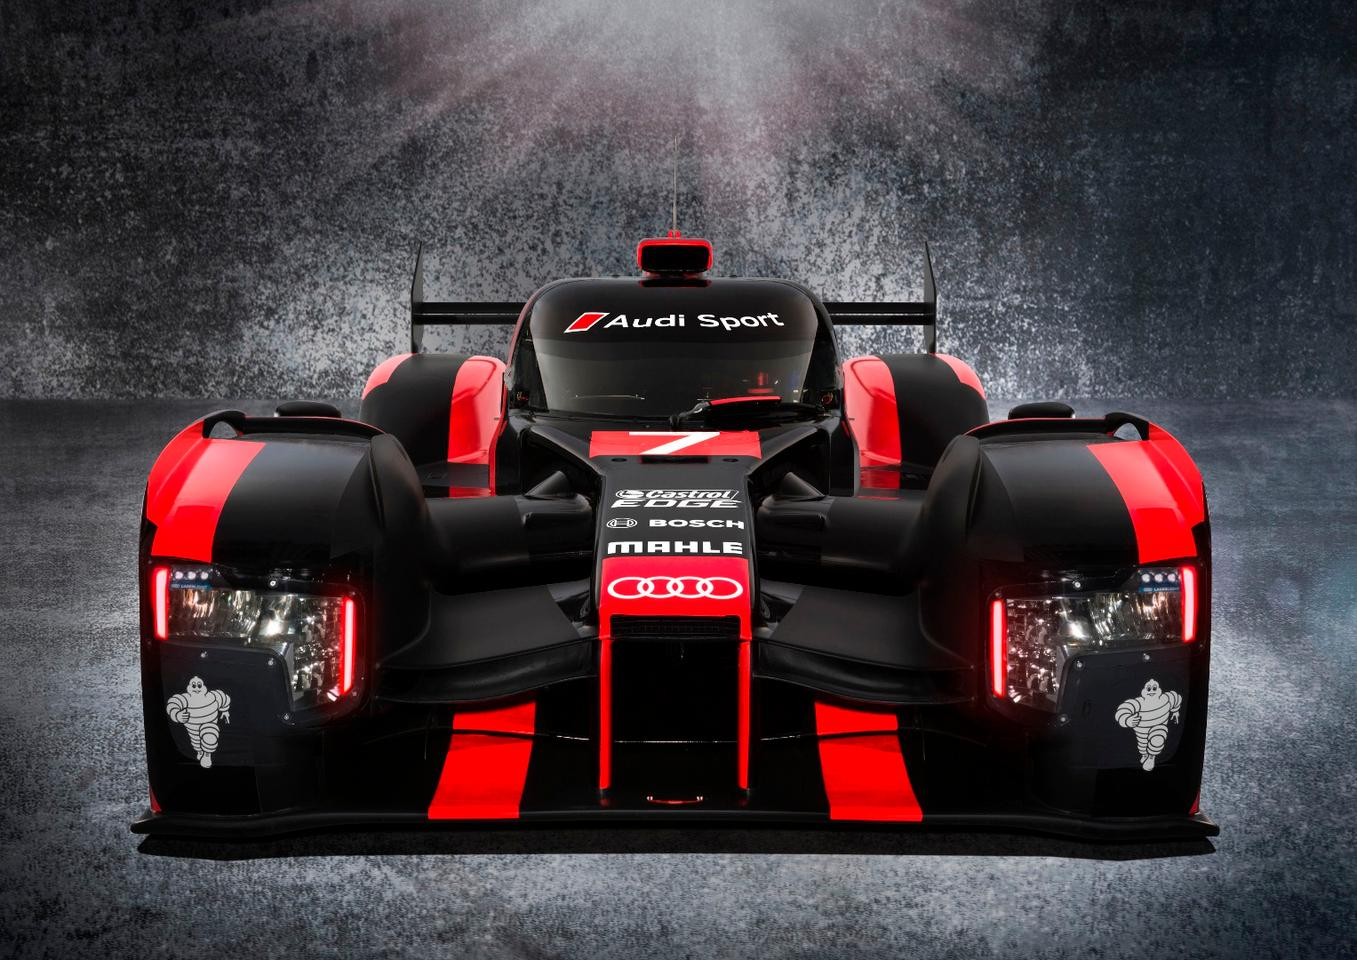 Audi has promised further technical details on the car and its changes as the race season nears